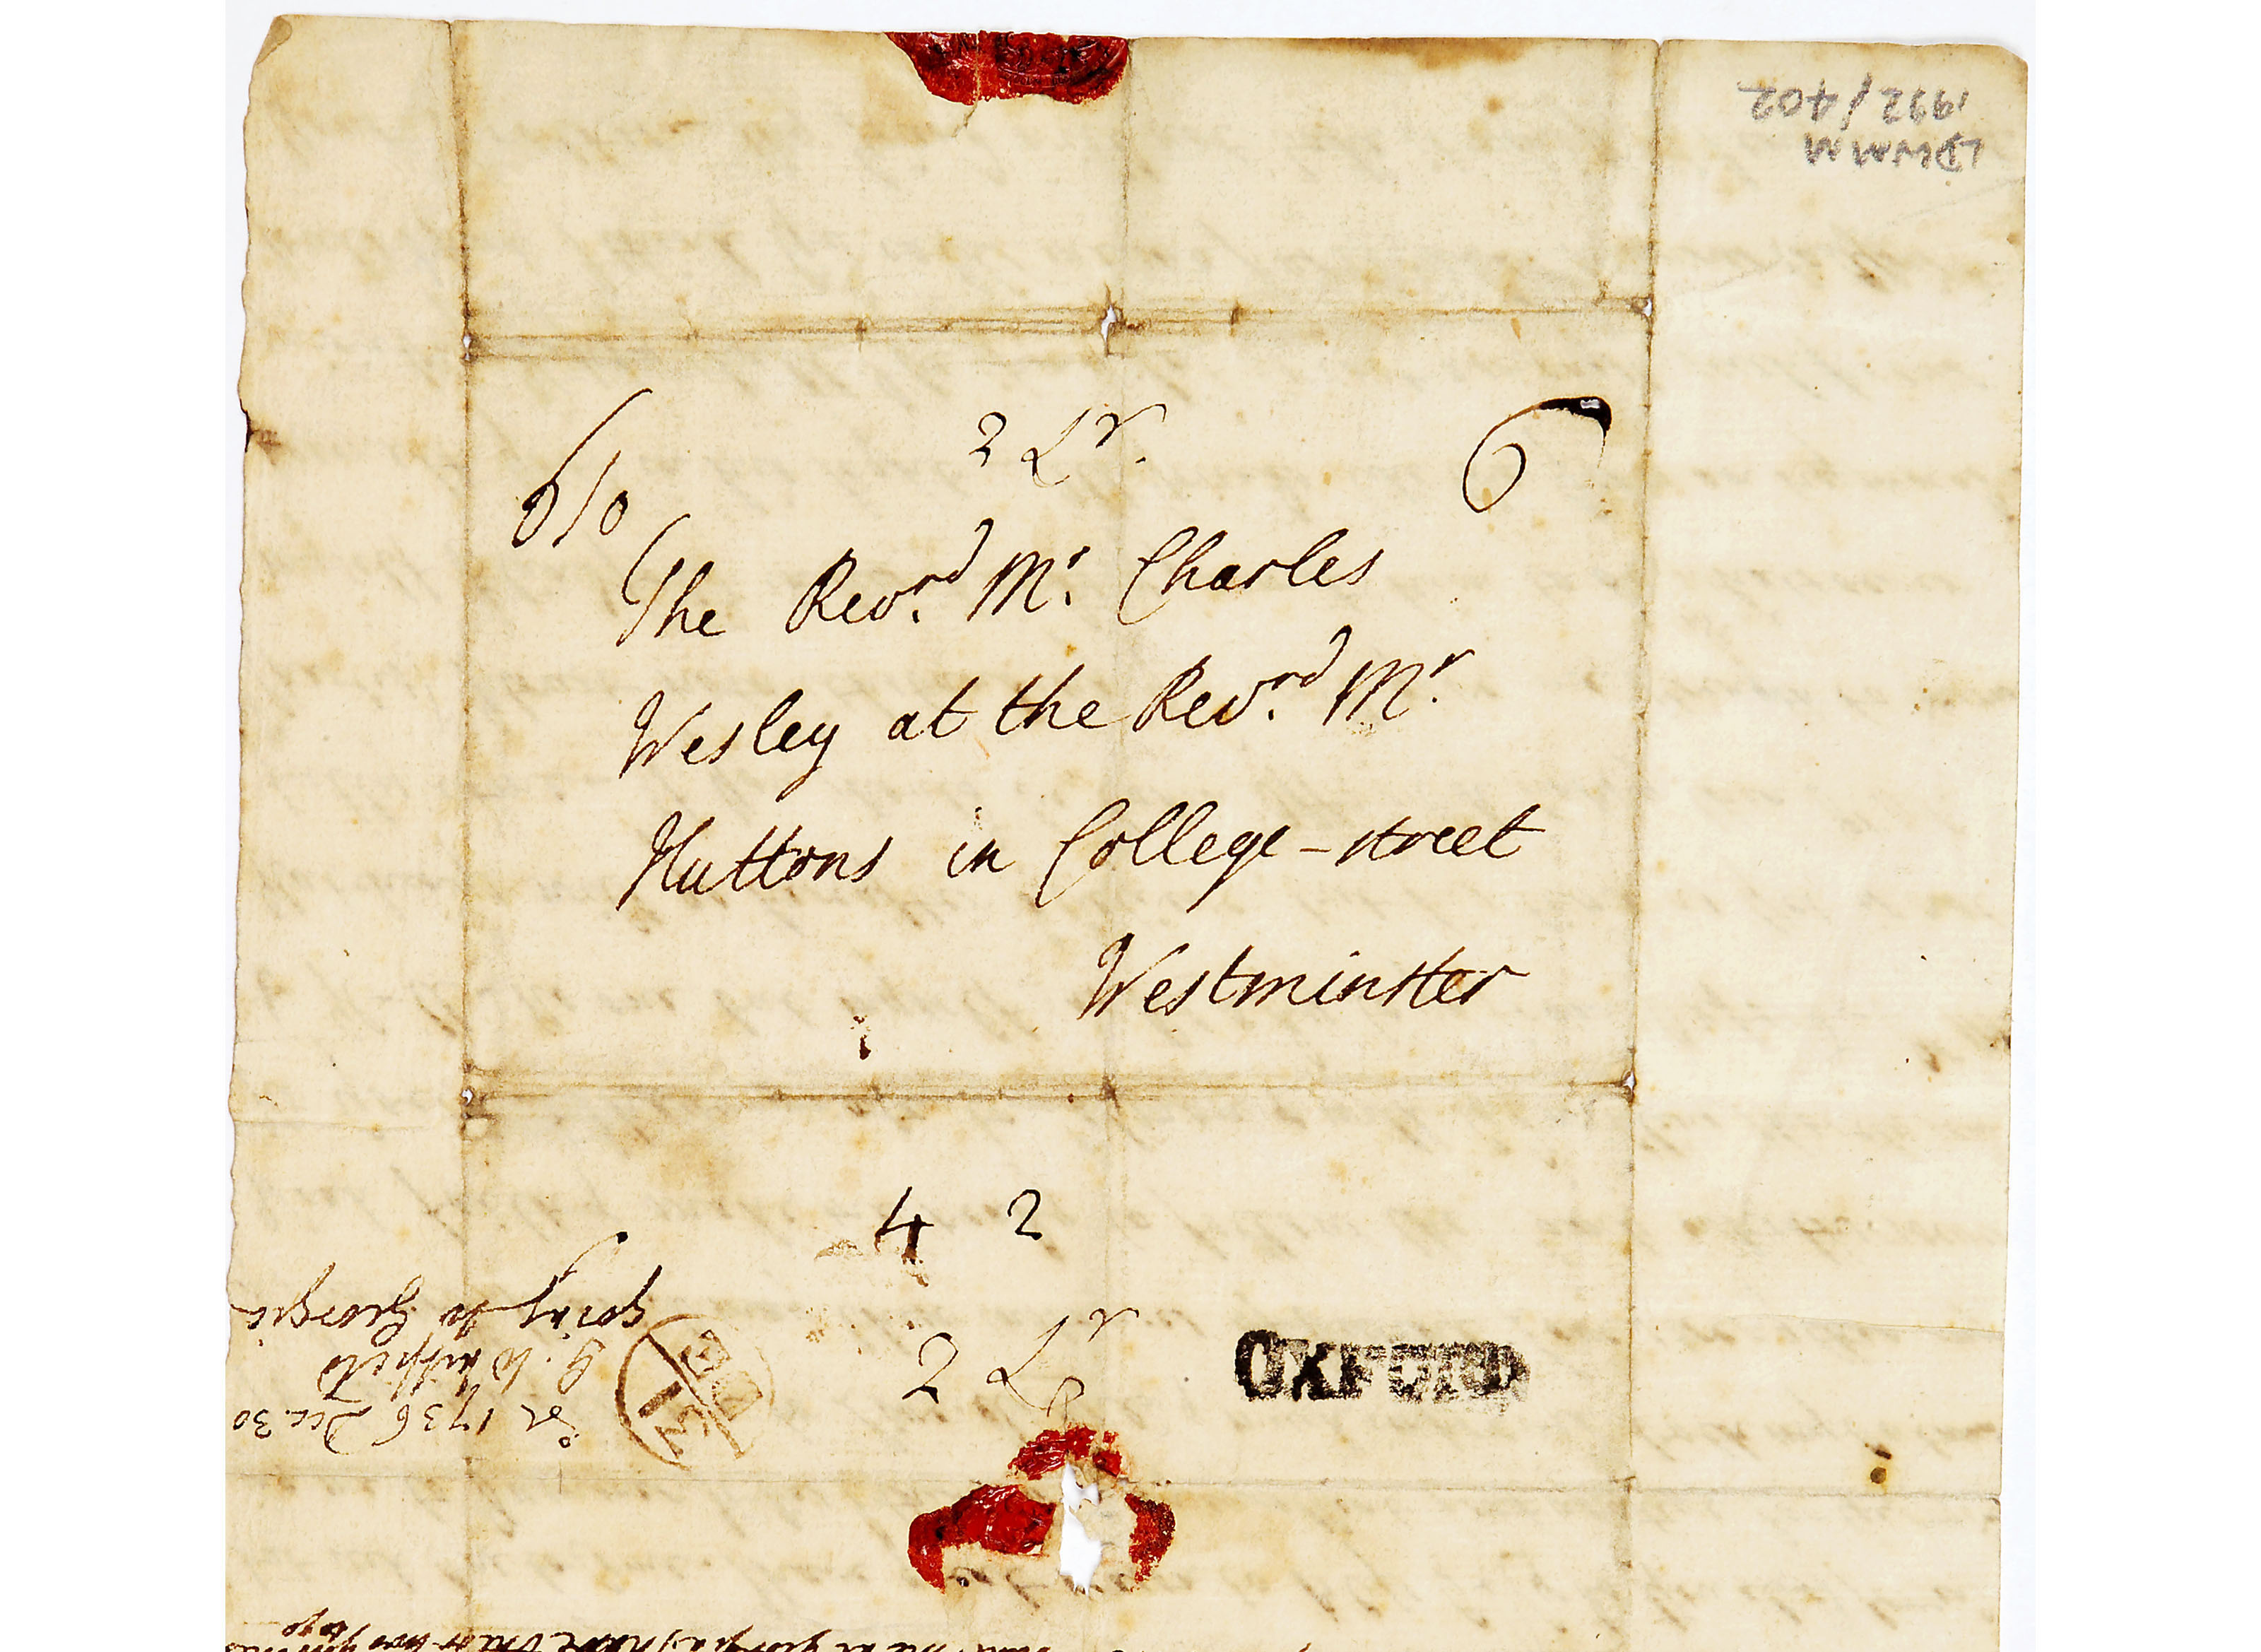 Letter from George Whitfield to Charles Wesley